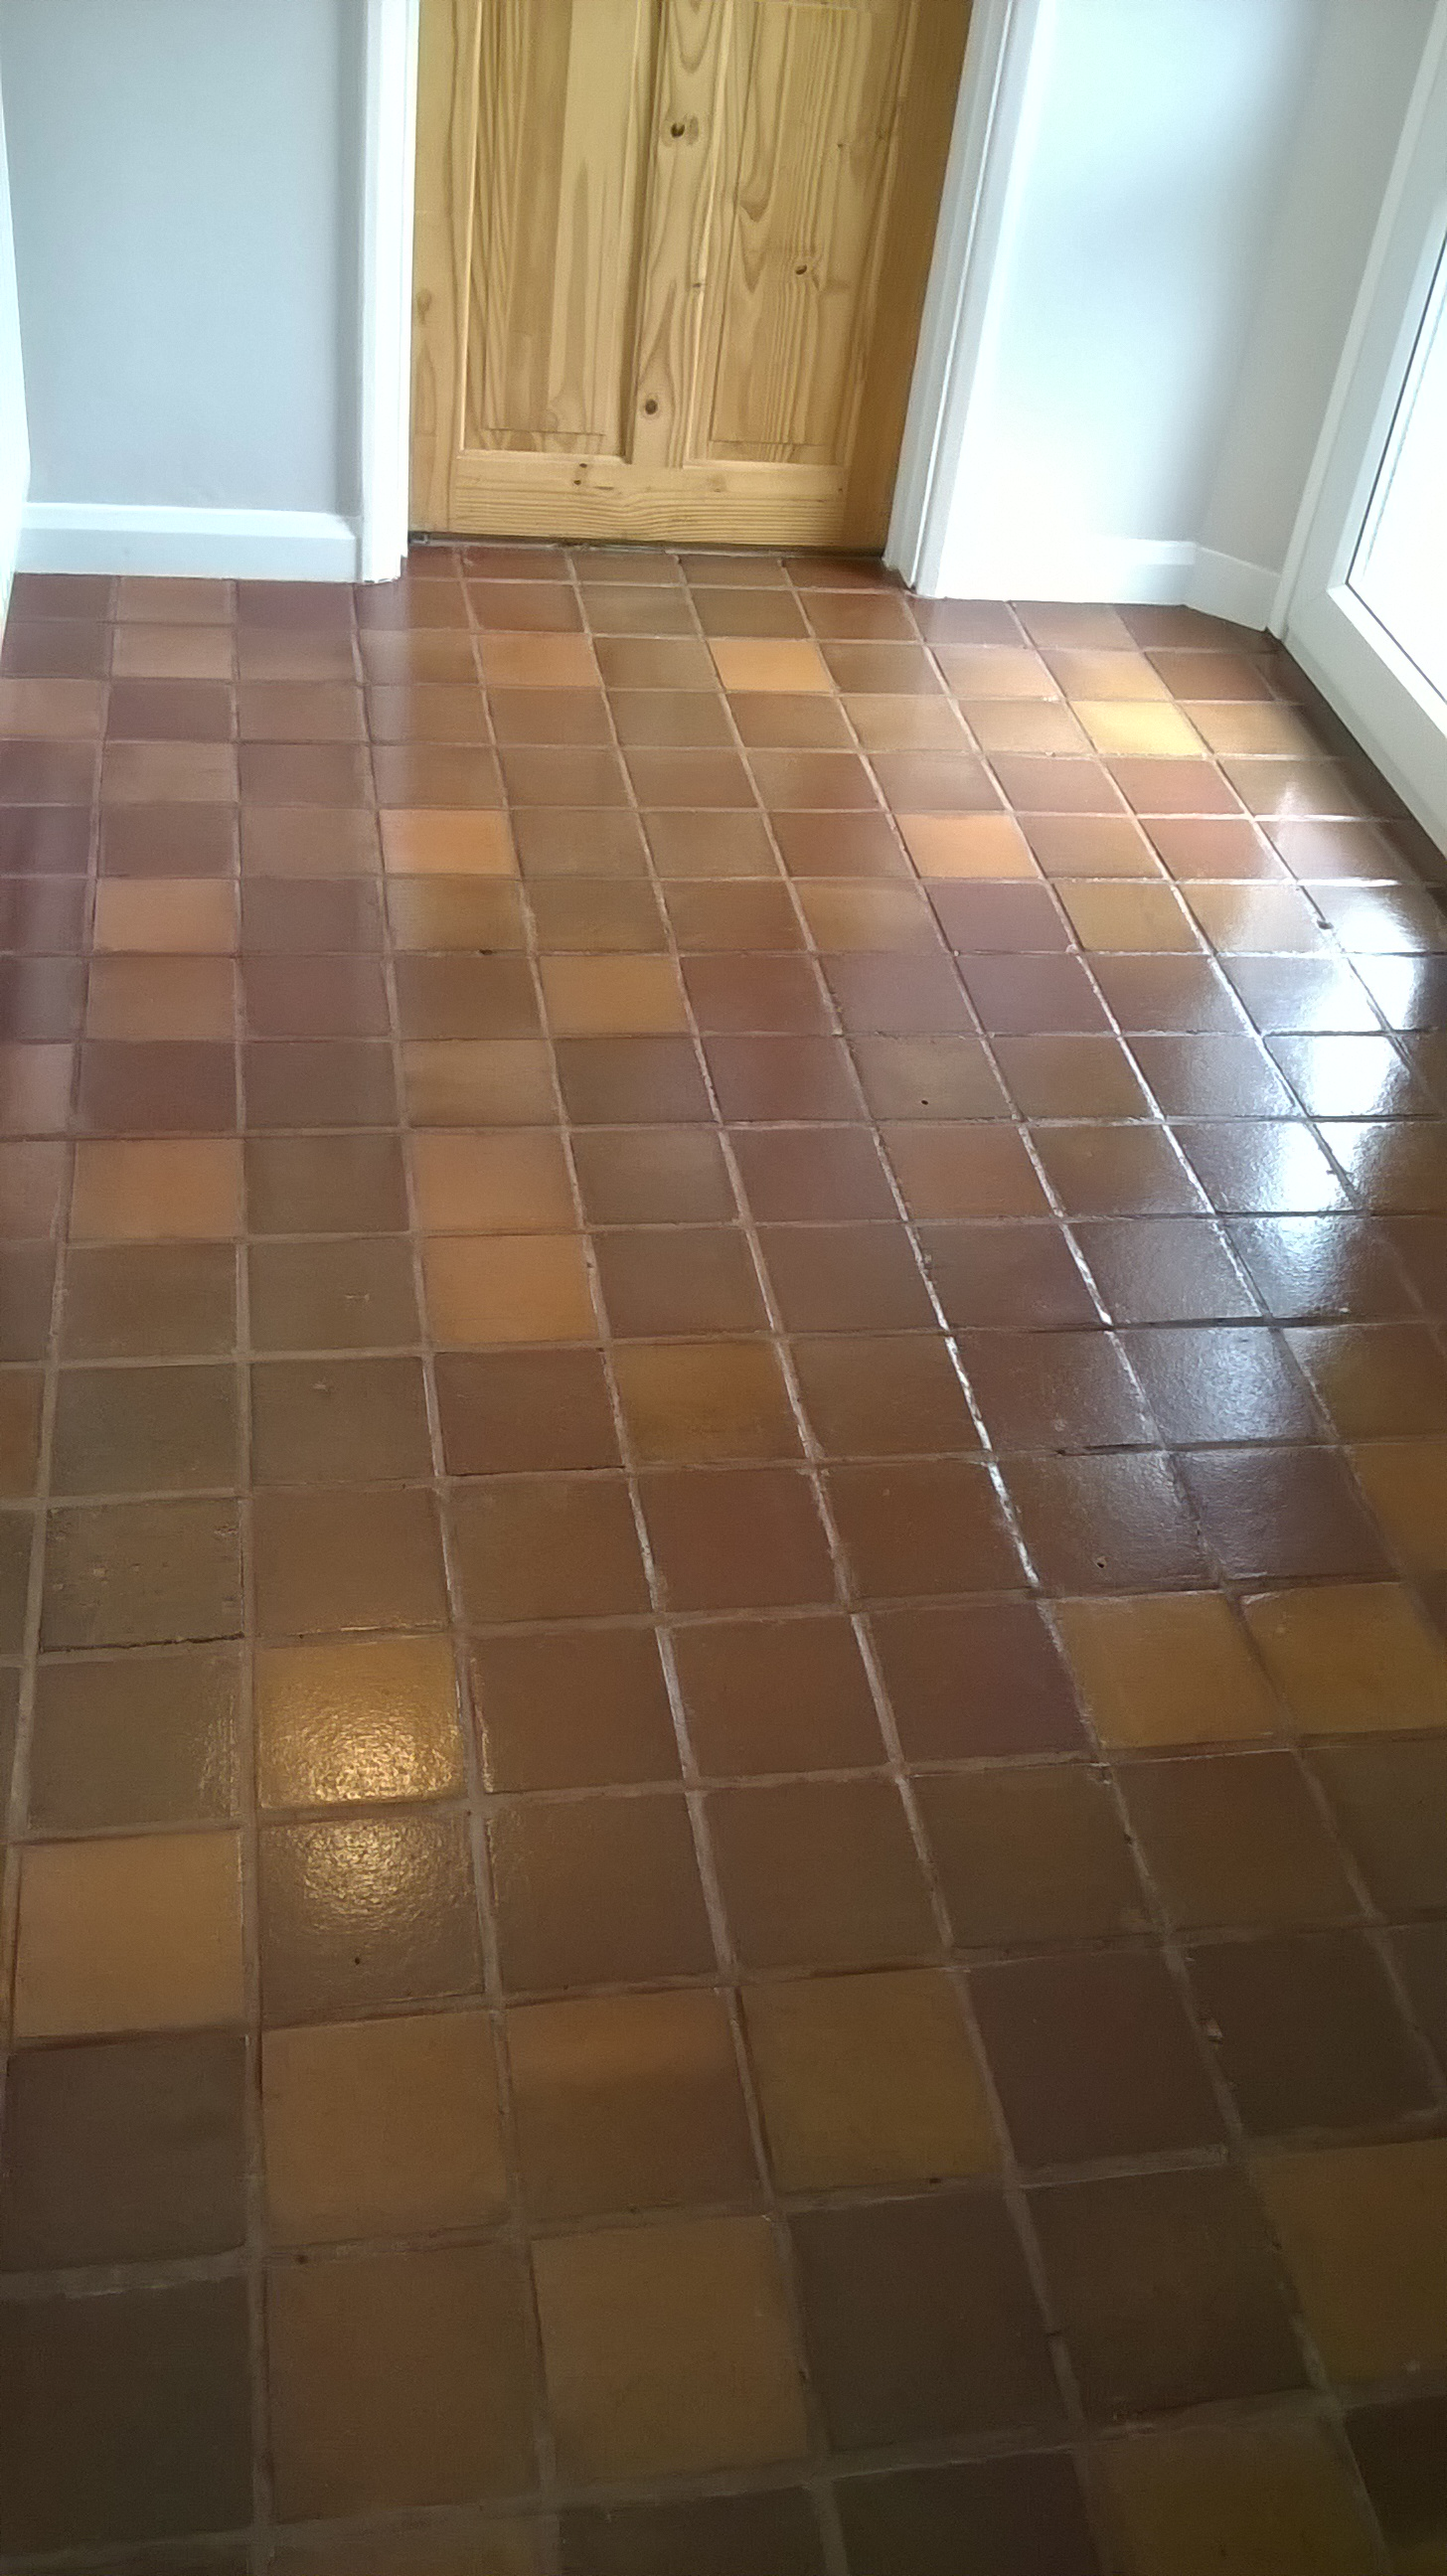 Quarry Tiled Kitchen After Cleaning in Tutbury Burton on Trent